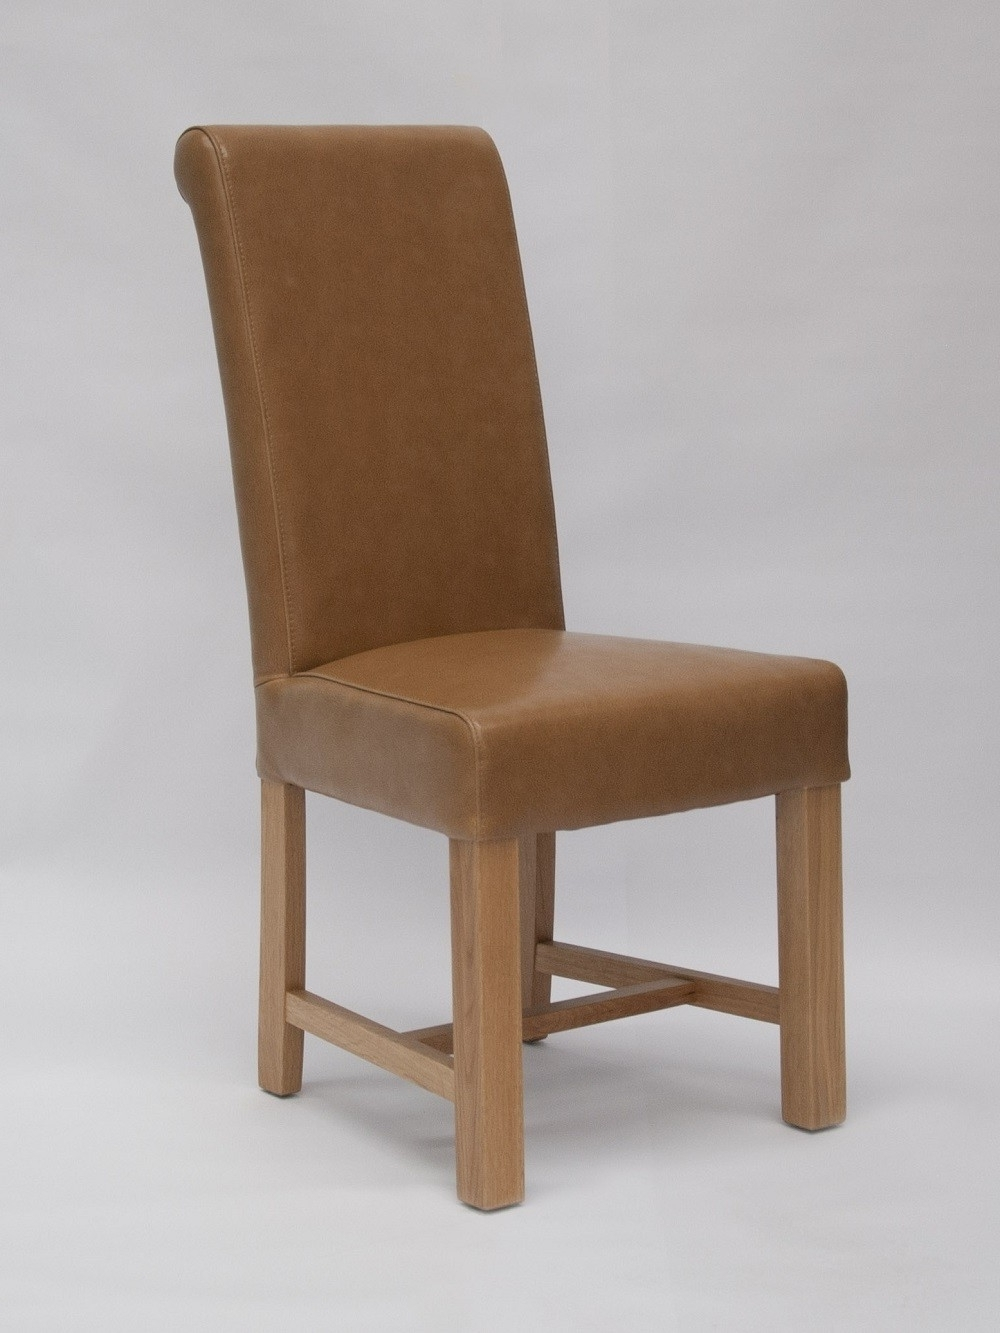 Oak Furniture Uk Within Oak Leather Dining Chairs (View 22 of 25)